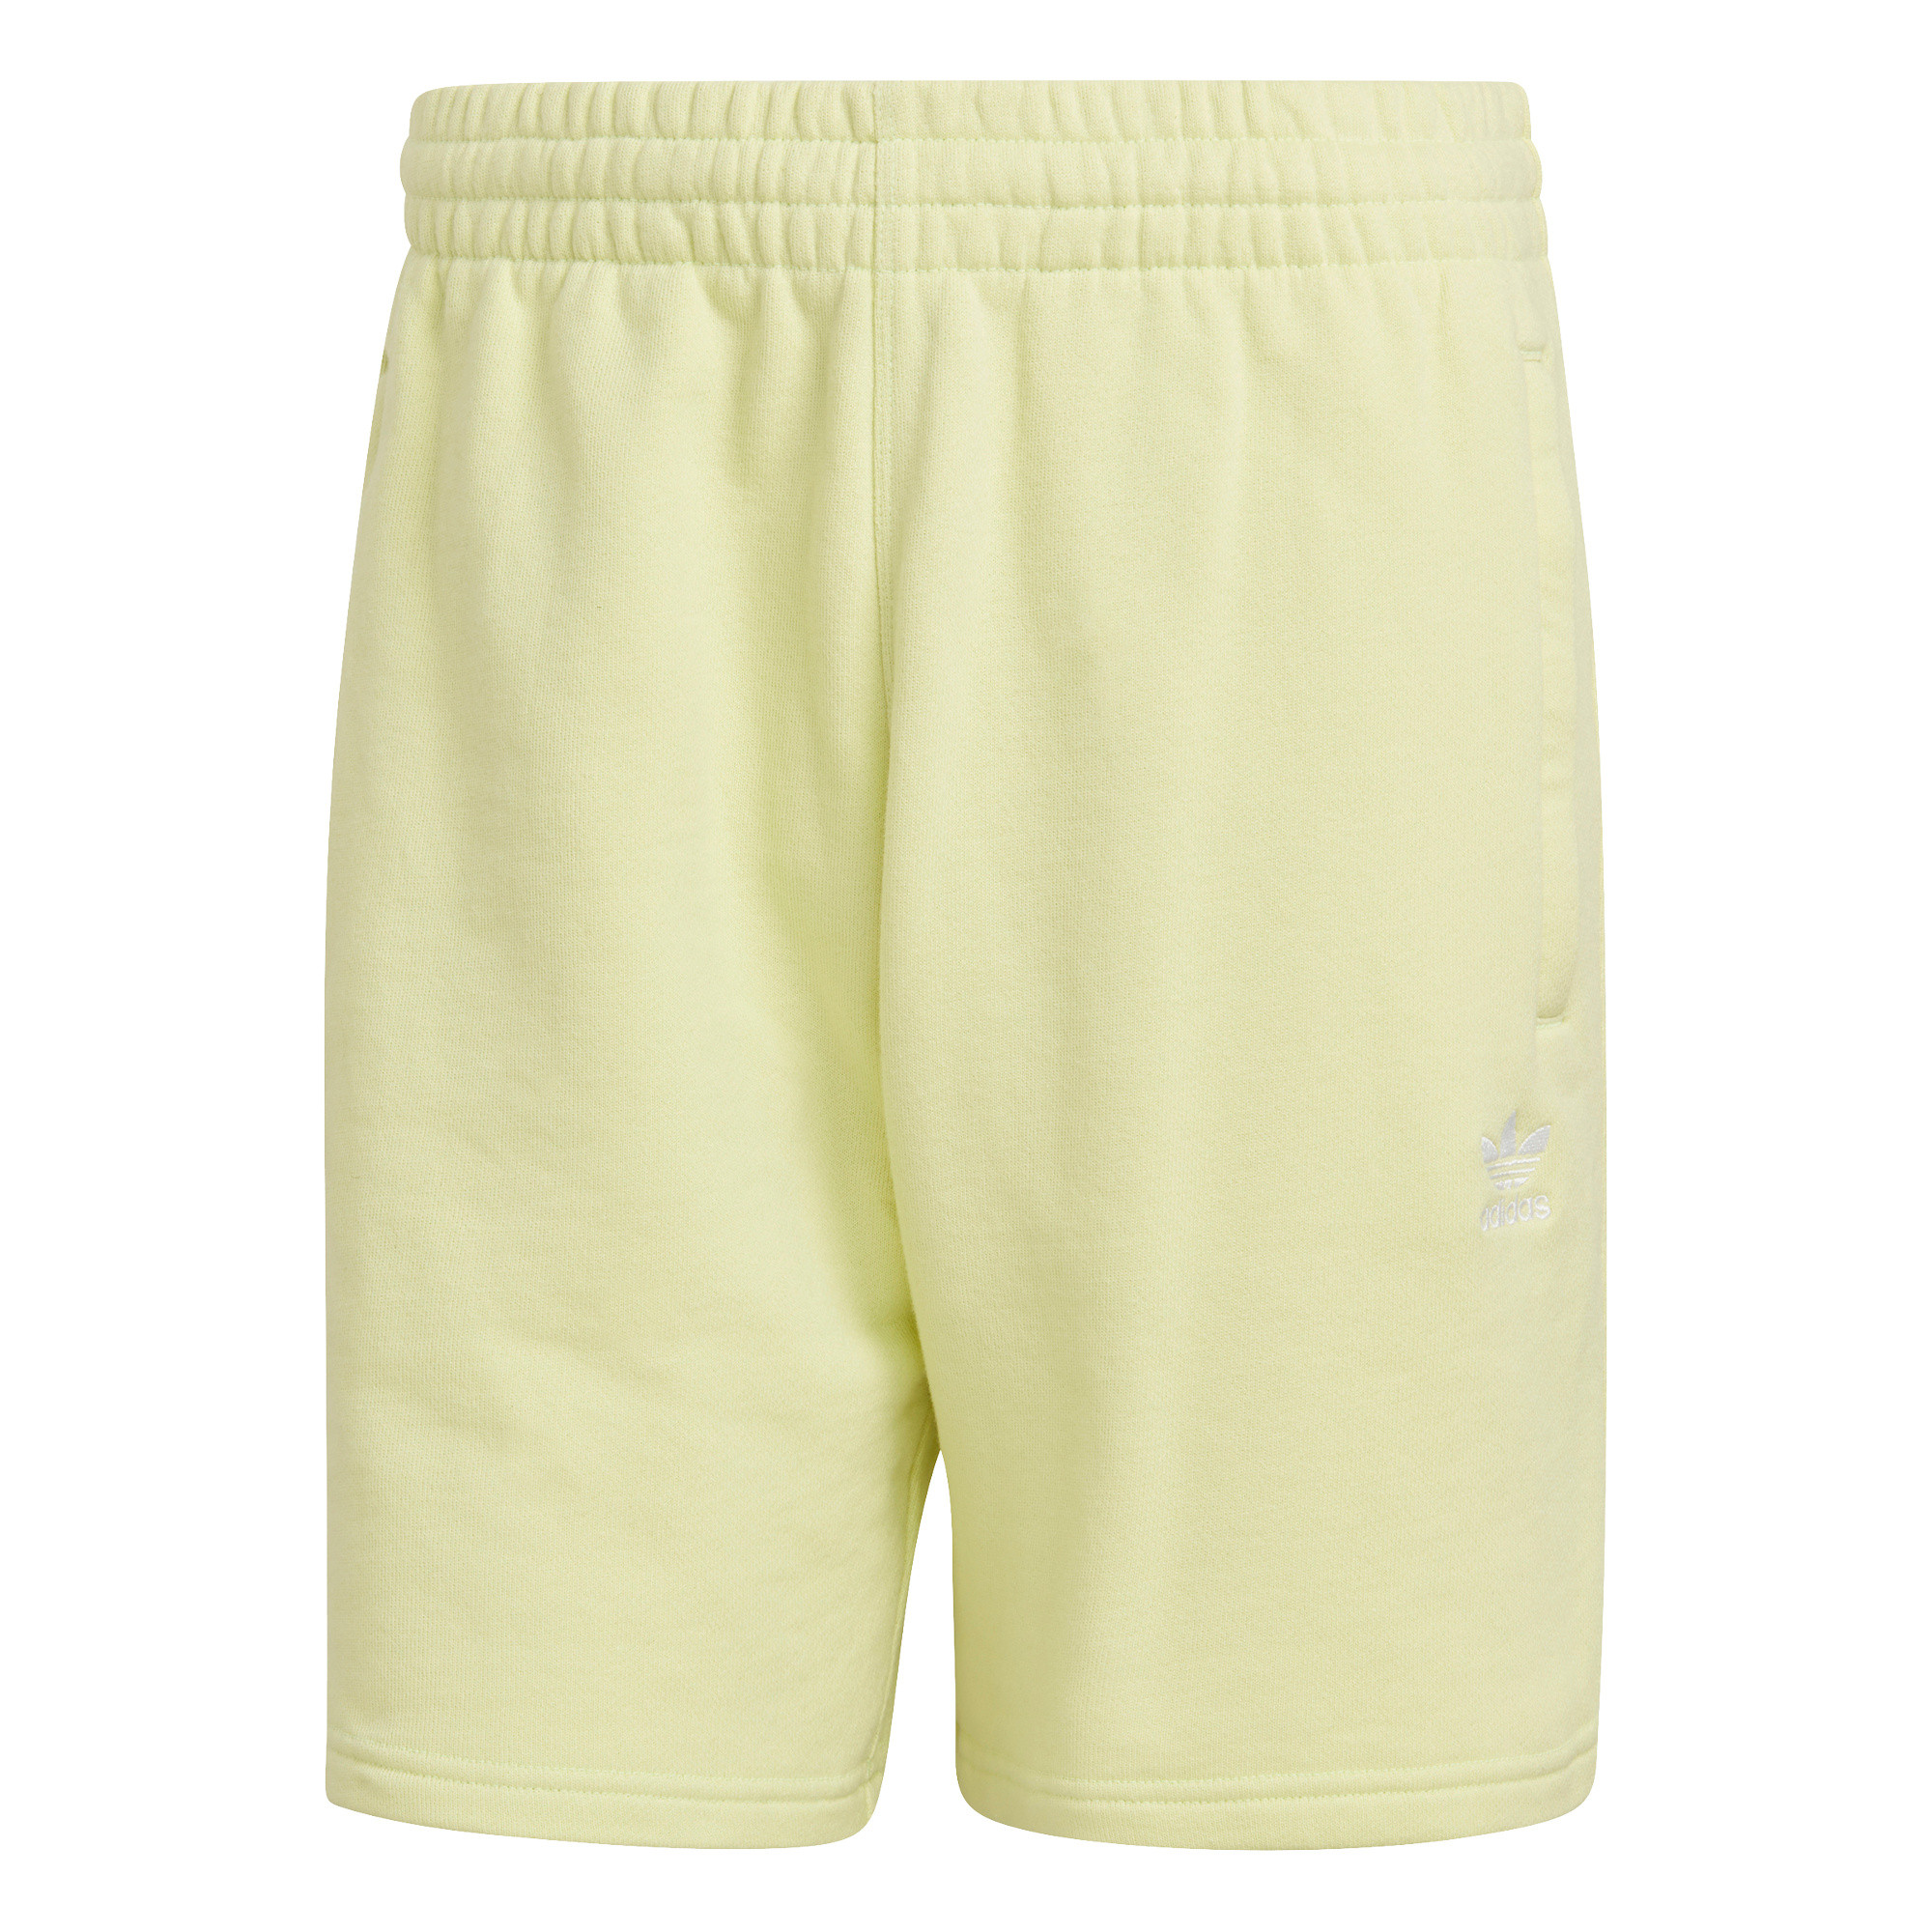 Short loungewear trefoil essentials, Giallo, large image number 0